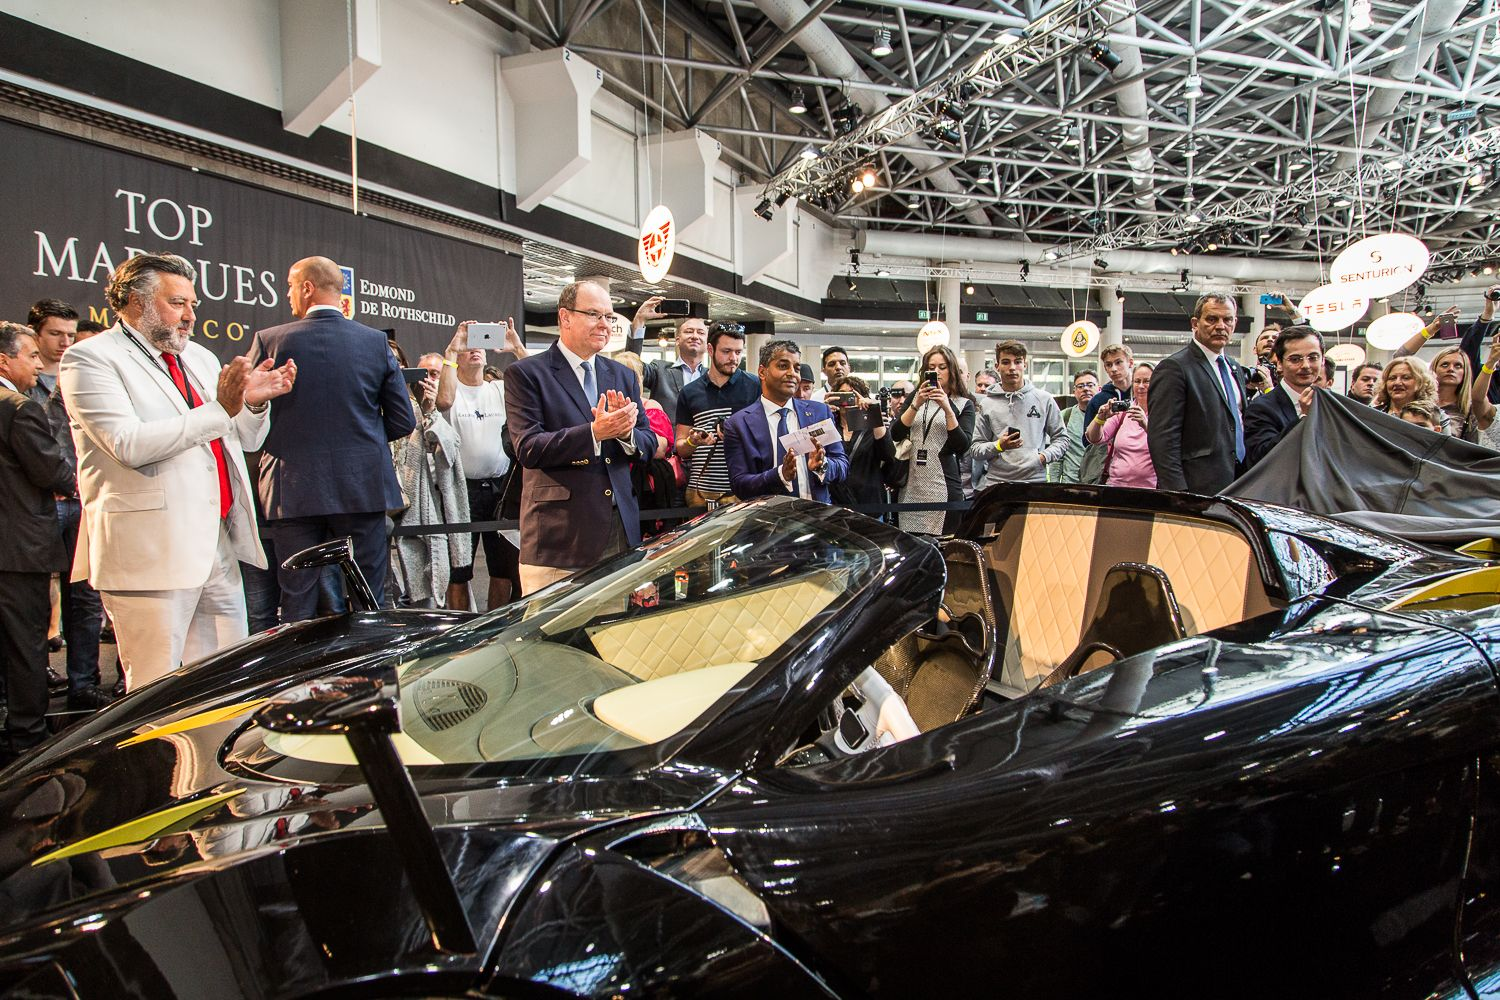 6 Global Premieres To Catch At Top Marques Monaco Auto Show